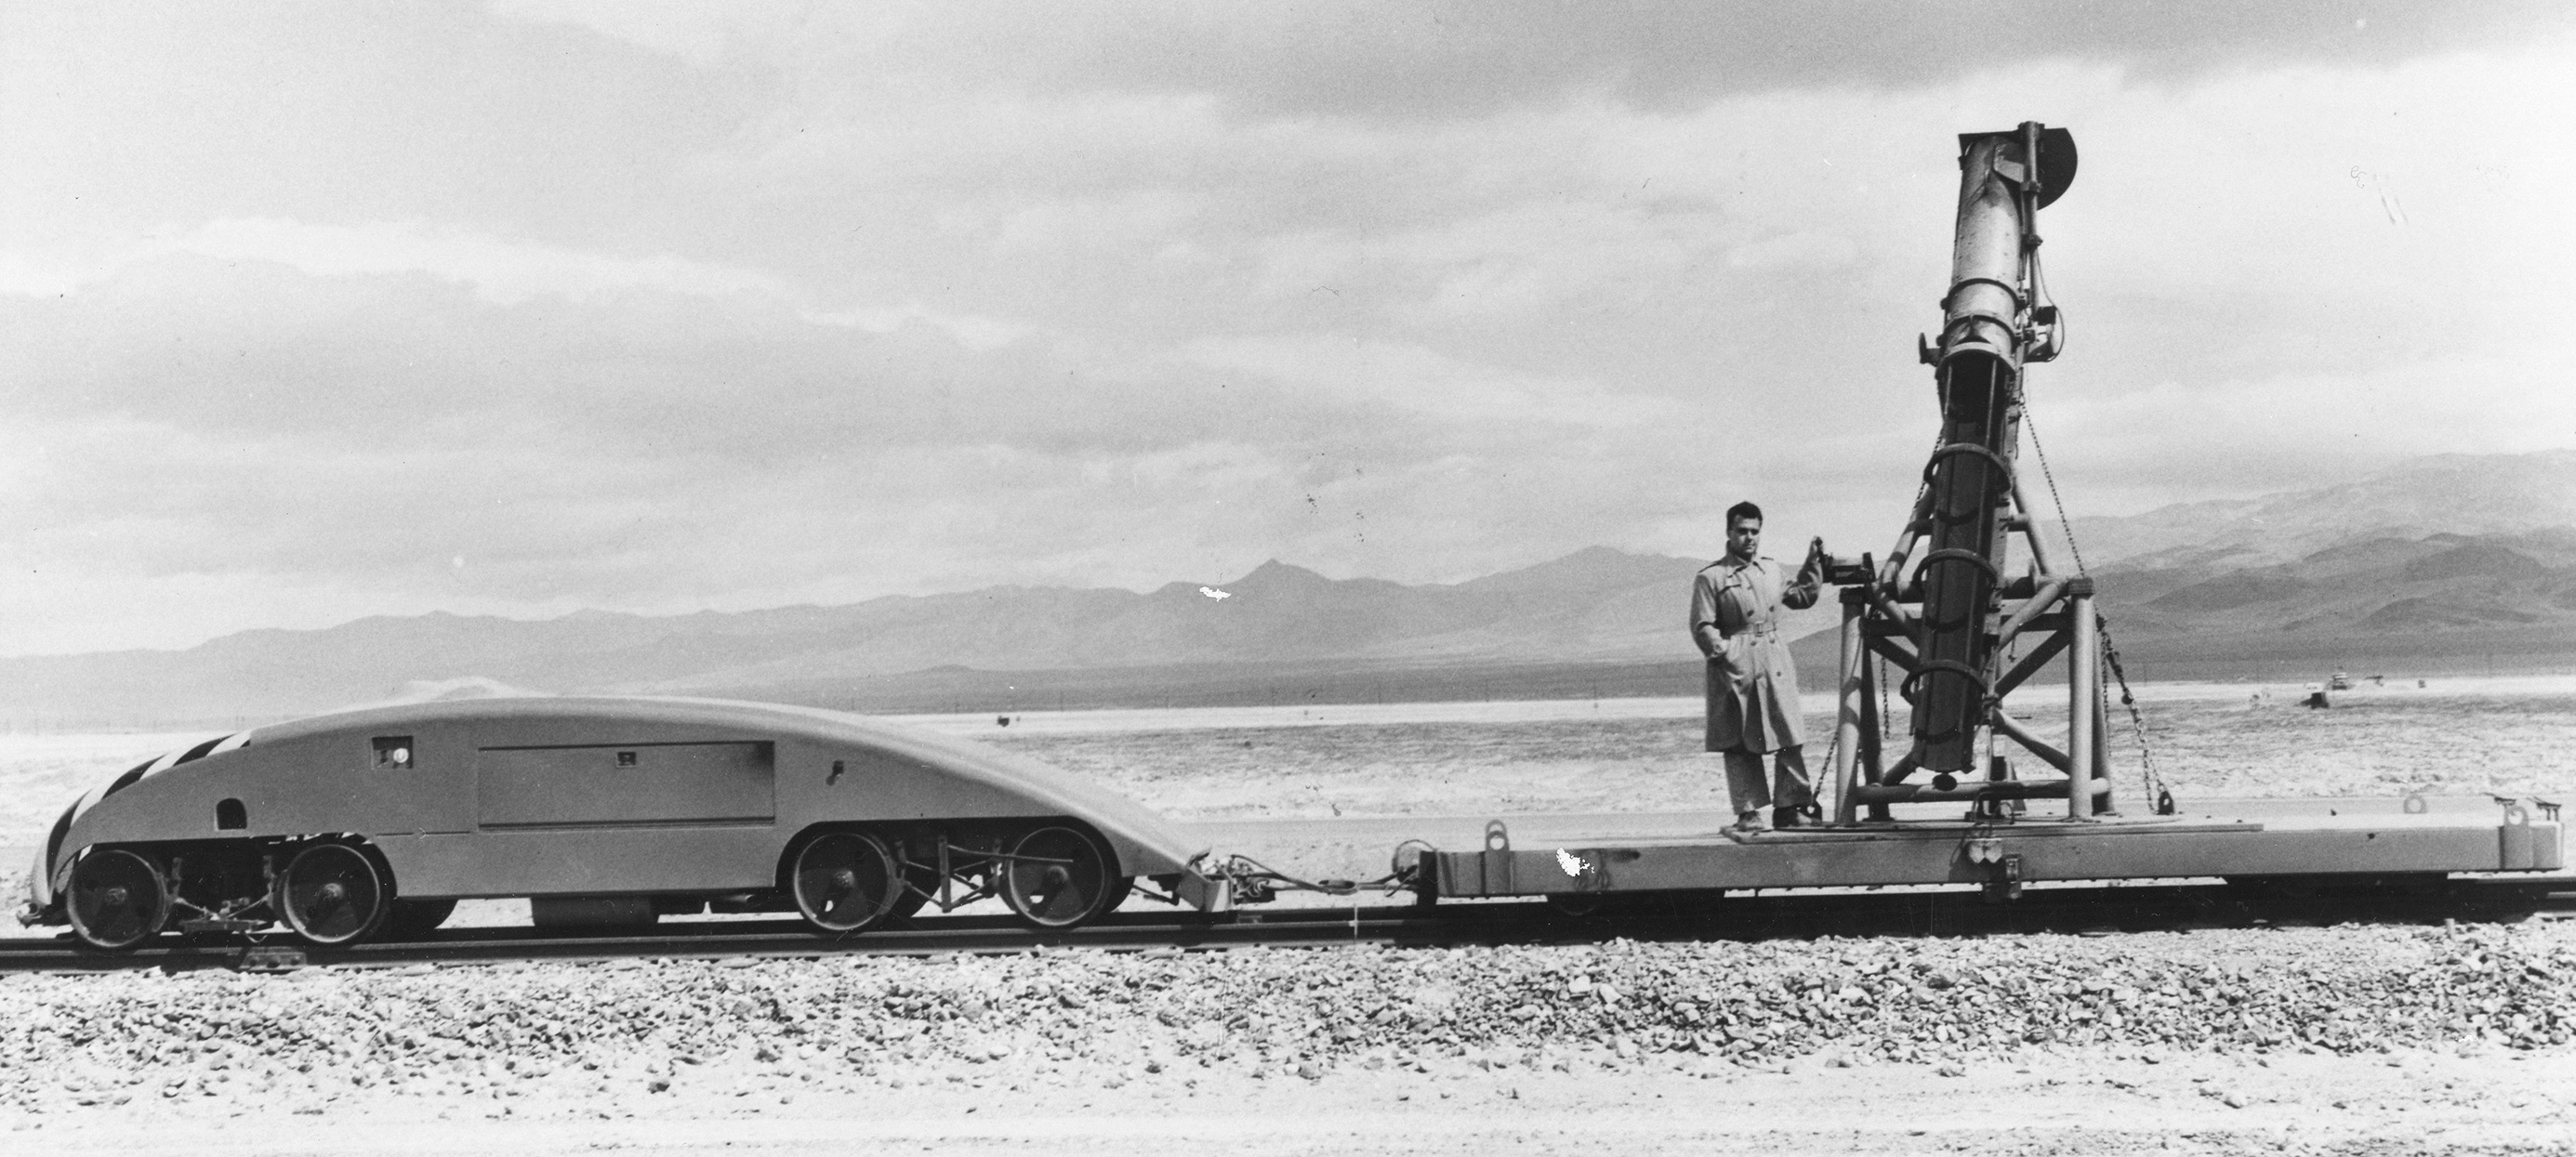 George Leitmann on rocket test track, China Lake, mid-1950s